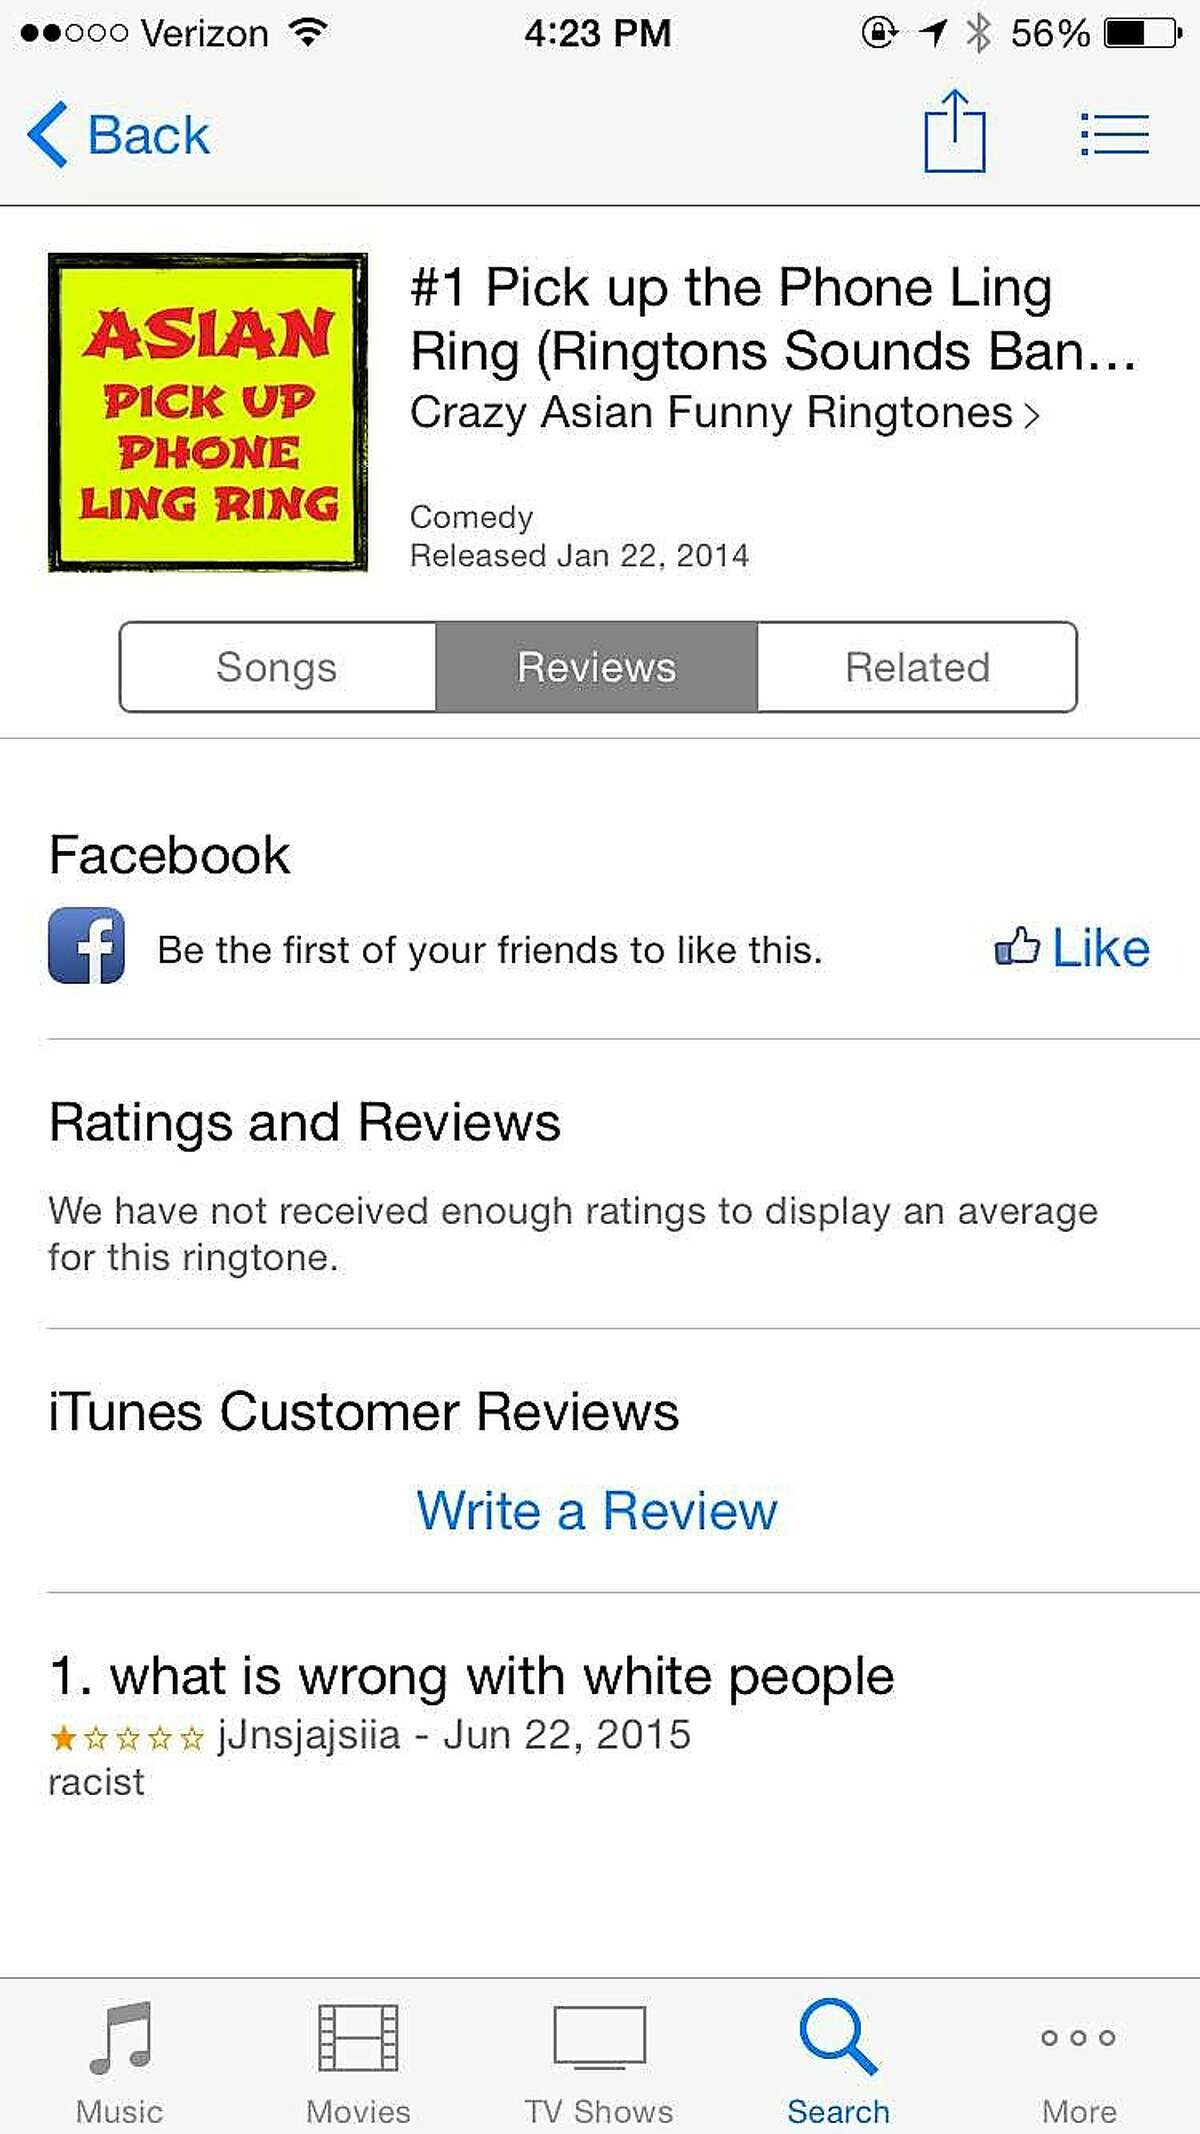 """A screenshot of the ringtone, """"#1 Pick up the Phone Ling Ring,"""" which was available for purchase on iTunes since Jan. 22, 2014. Apple's terms of use prohibit discriminatory ringtones, however many, like this, were allowed to exist unchecked for years. Apple removed dozens of offensive ringtones after a call from the San Francisco Chronicle this week."""